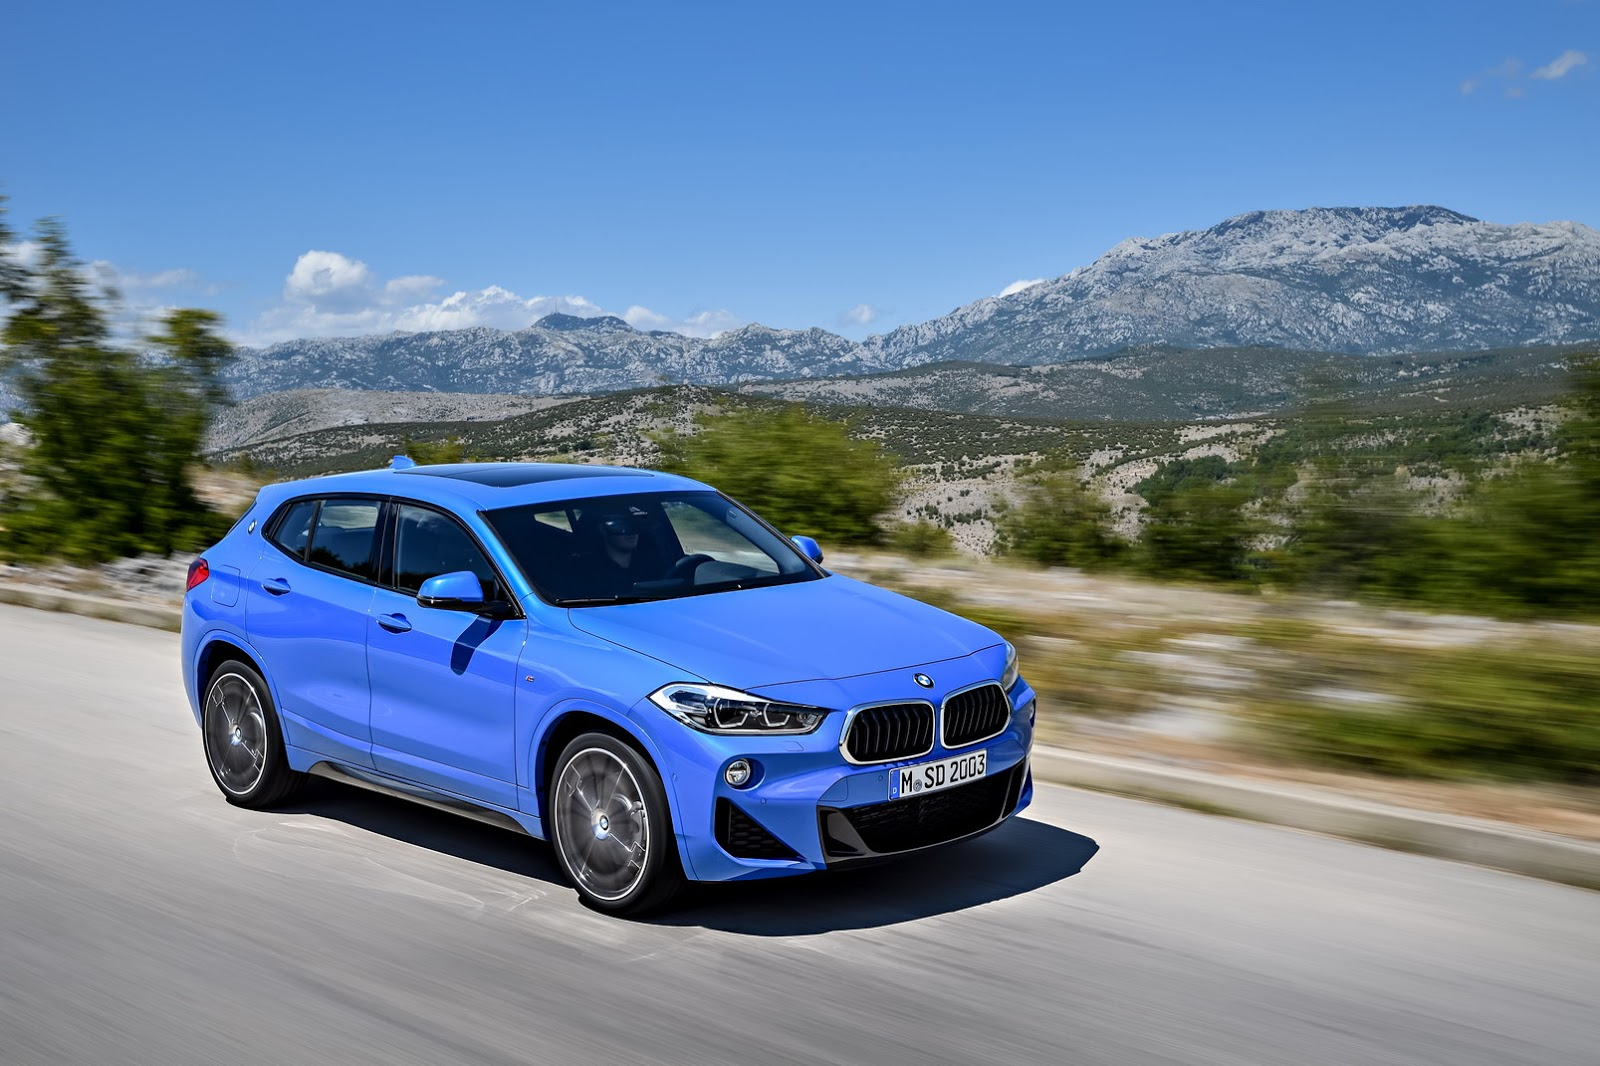 Bmw X1 M35i And X2 M35i To Get B48 2 0l Engine With 300 Hp